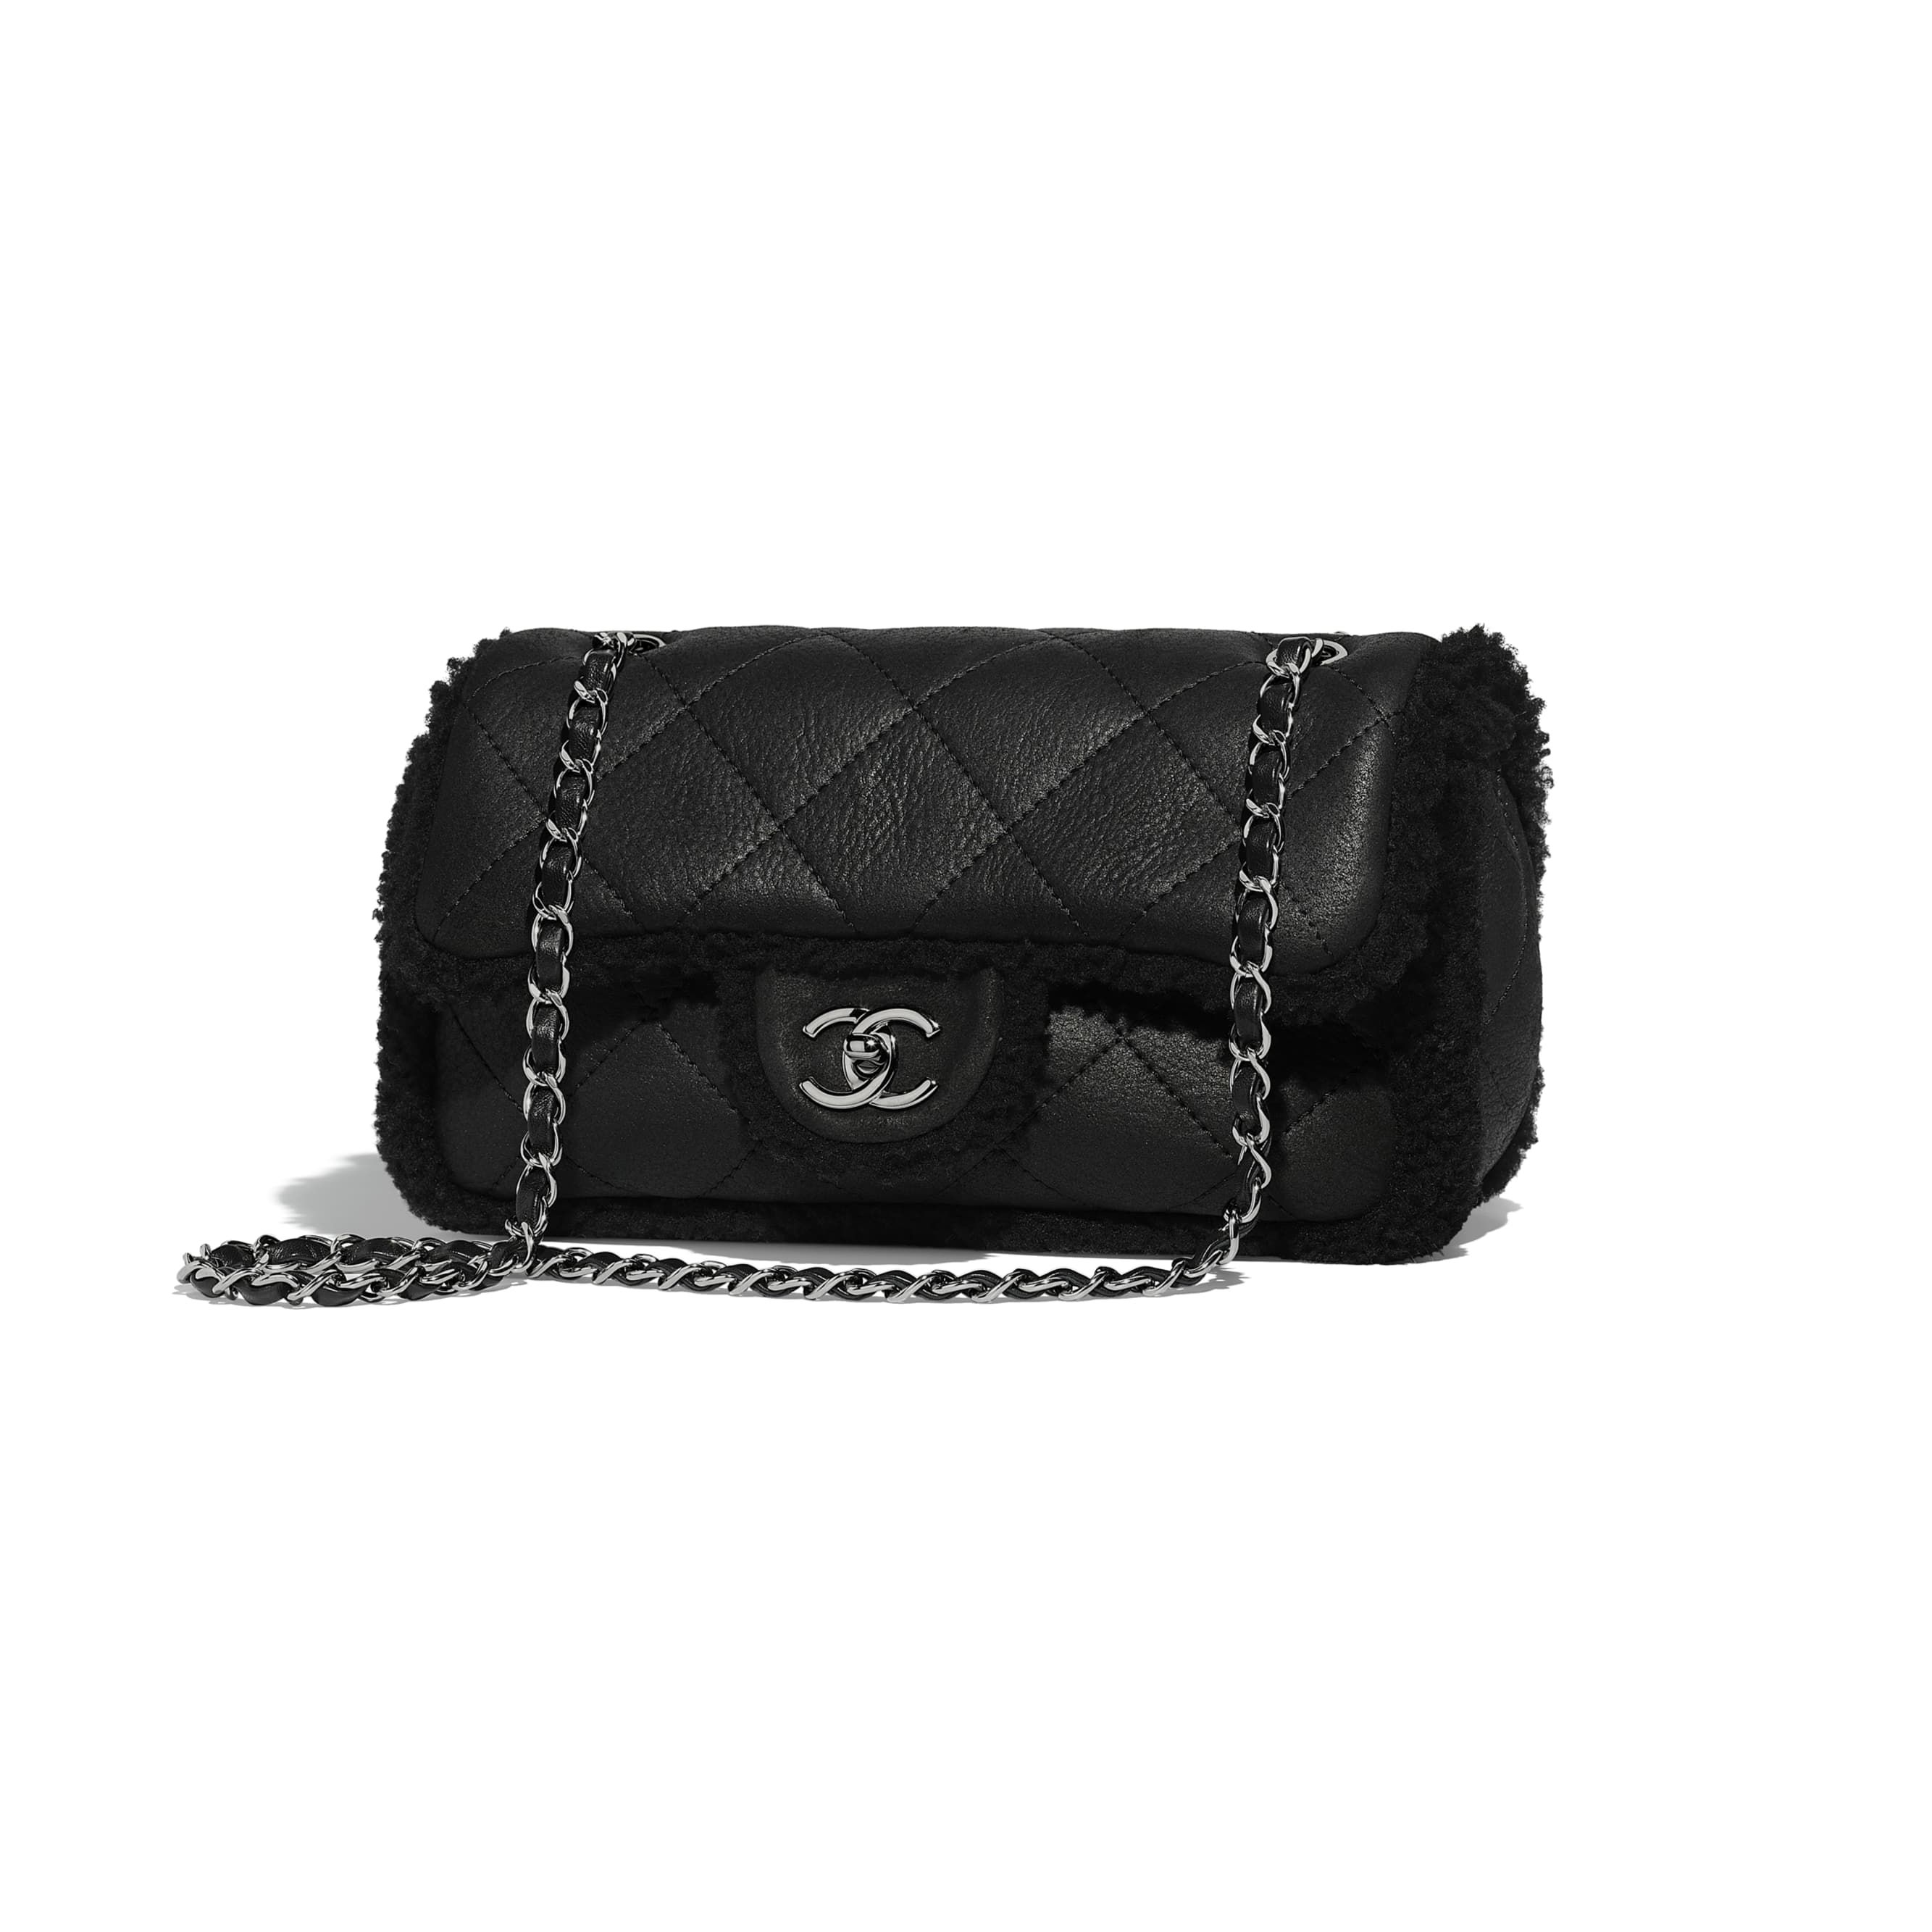 e3b80ebaa4 Chanel - Coco Neige Collection | Shearling lambskin & ruthenium ...